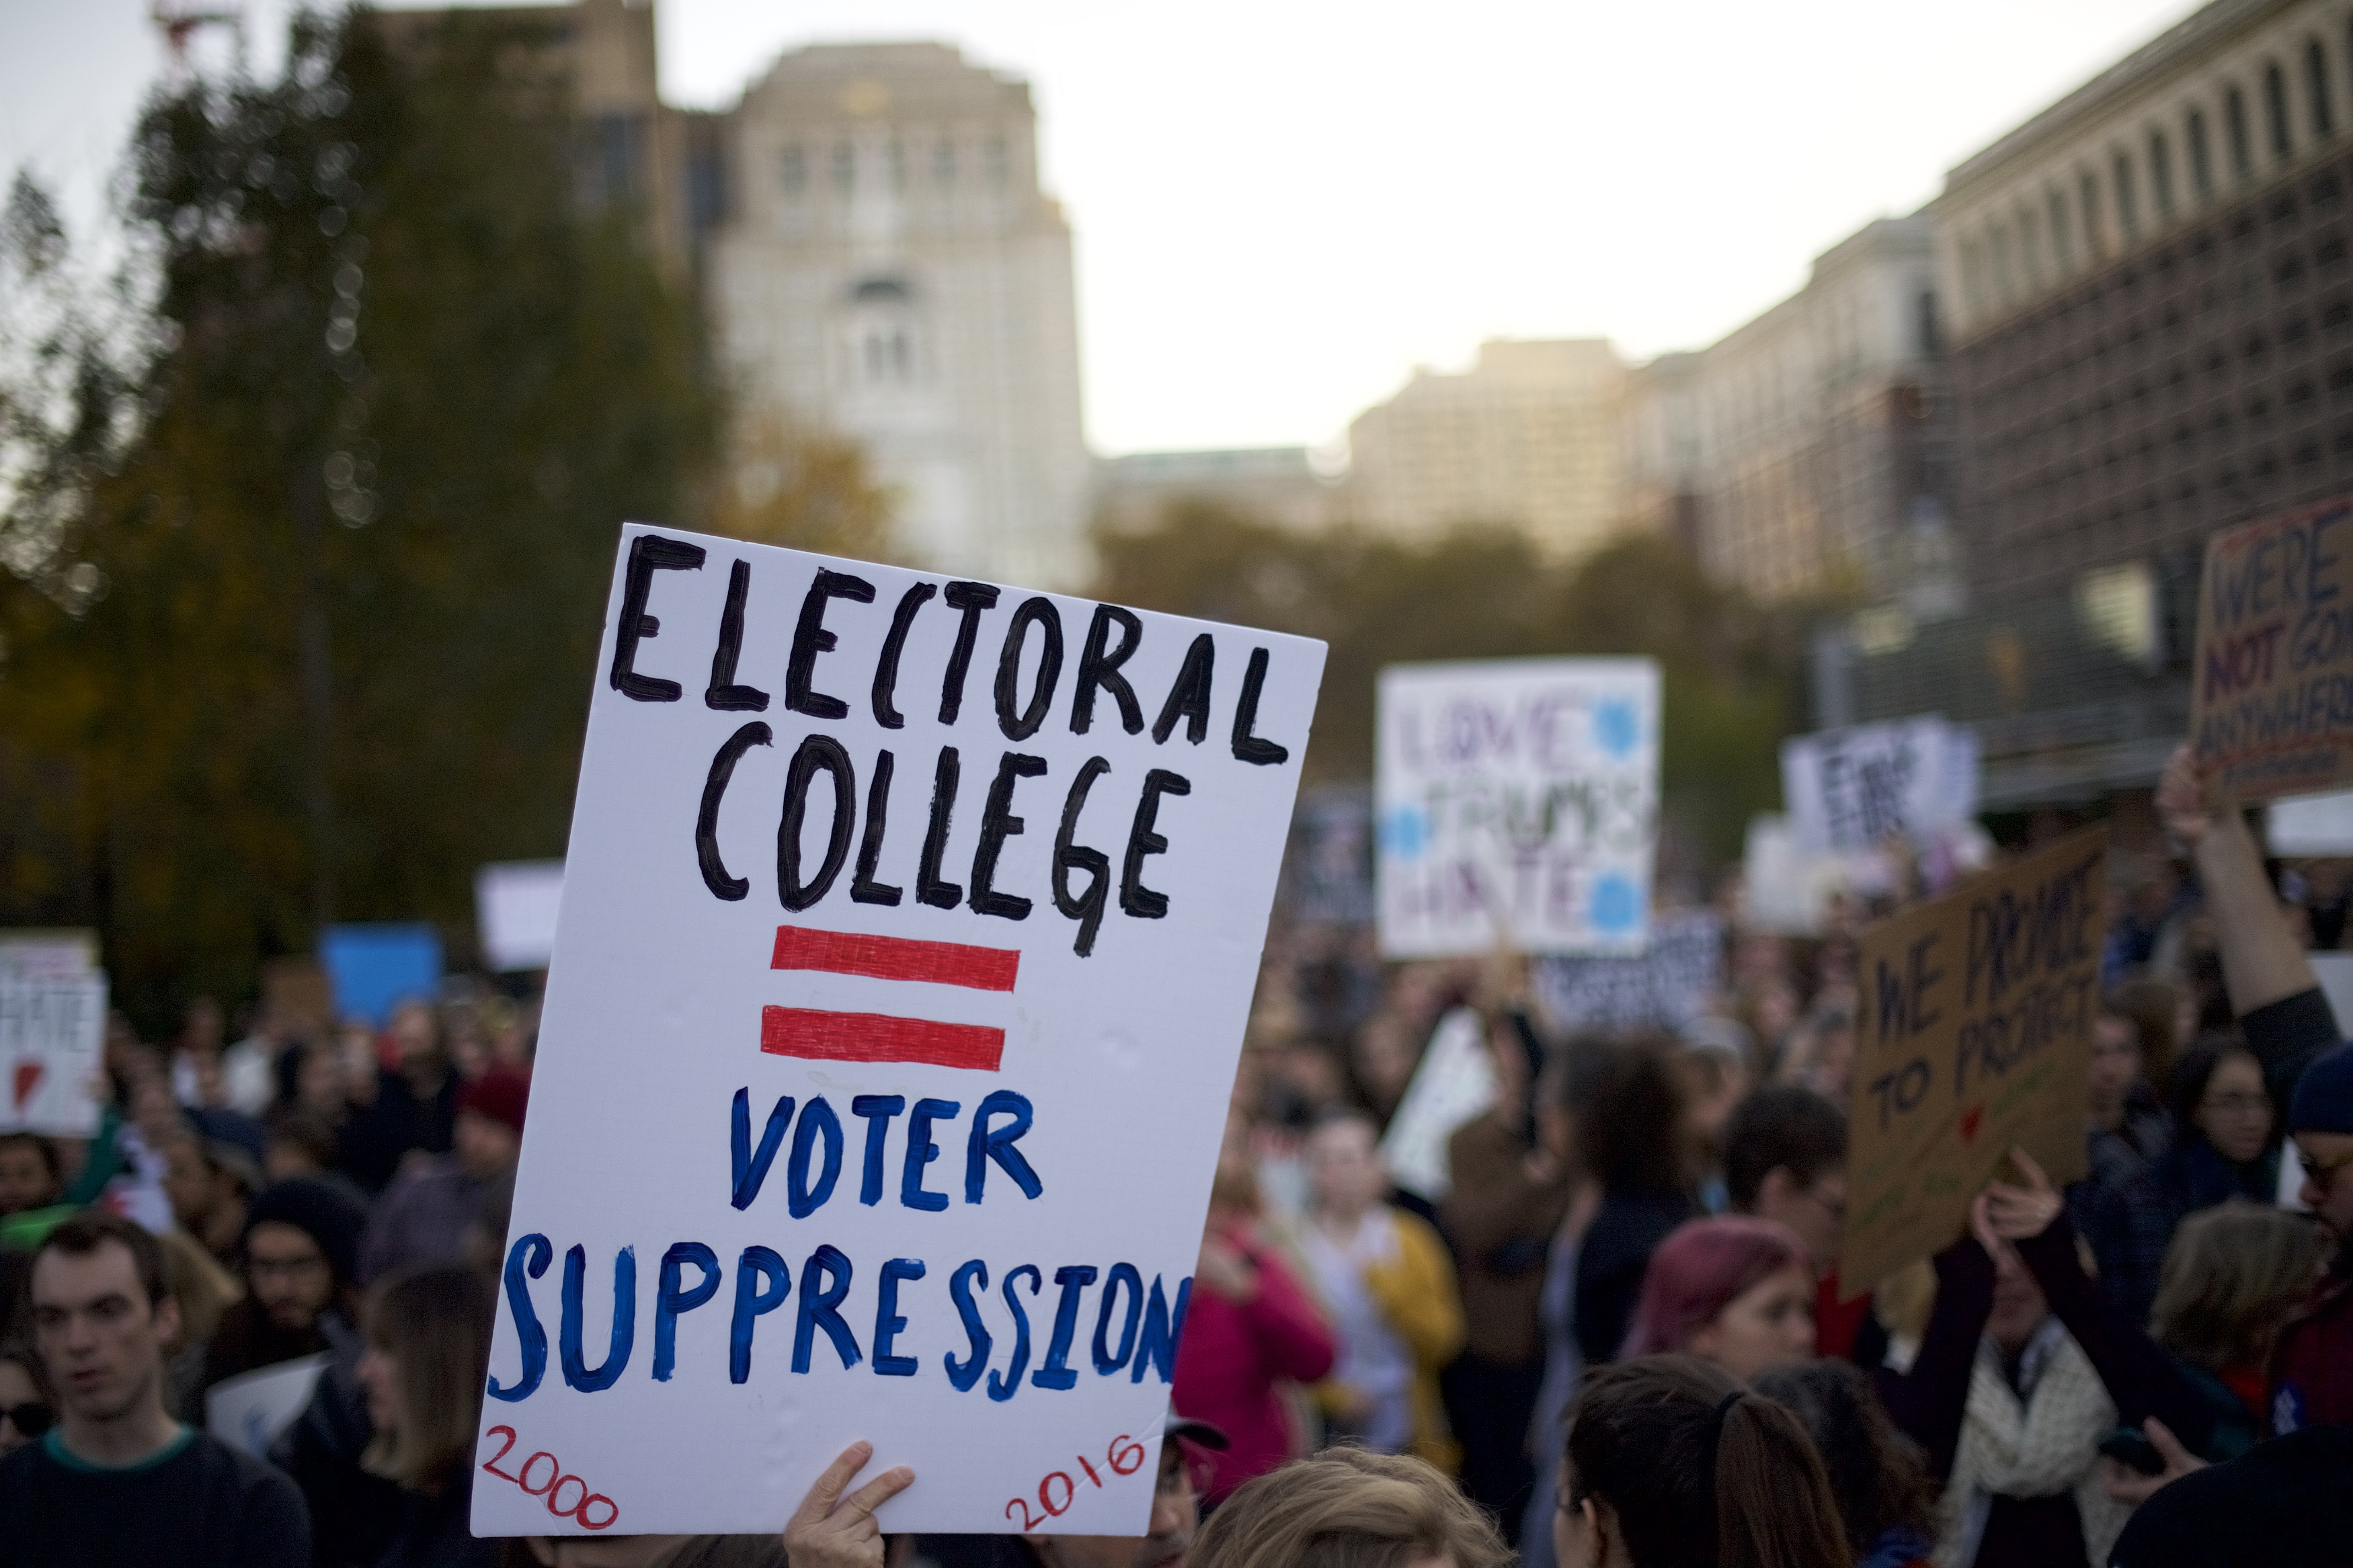 electoral college pros and cons essay electoral college essay  campaign born in strife after 230 years electoral college still creates divisions